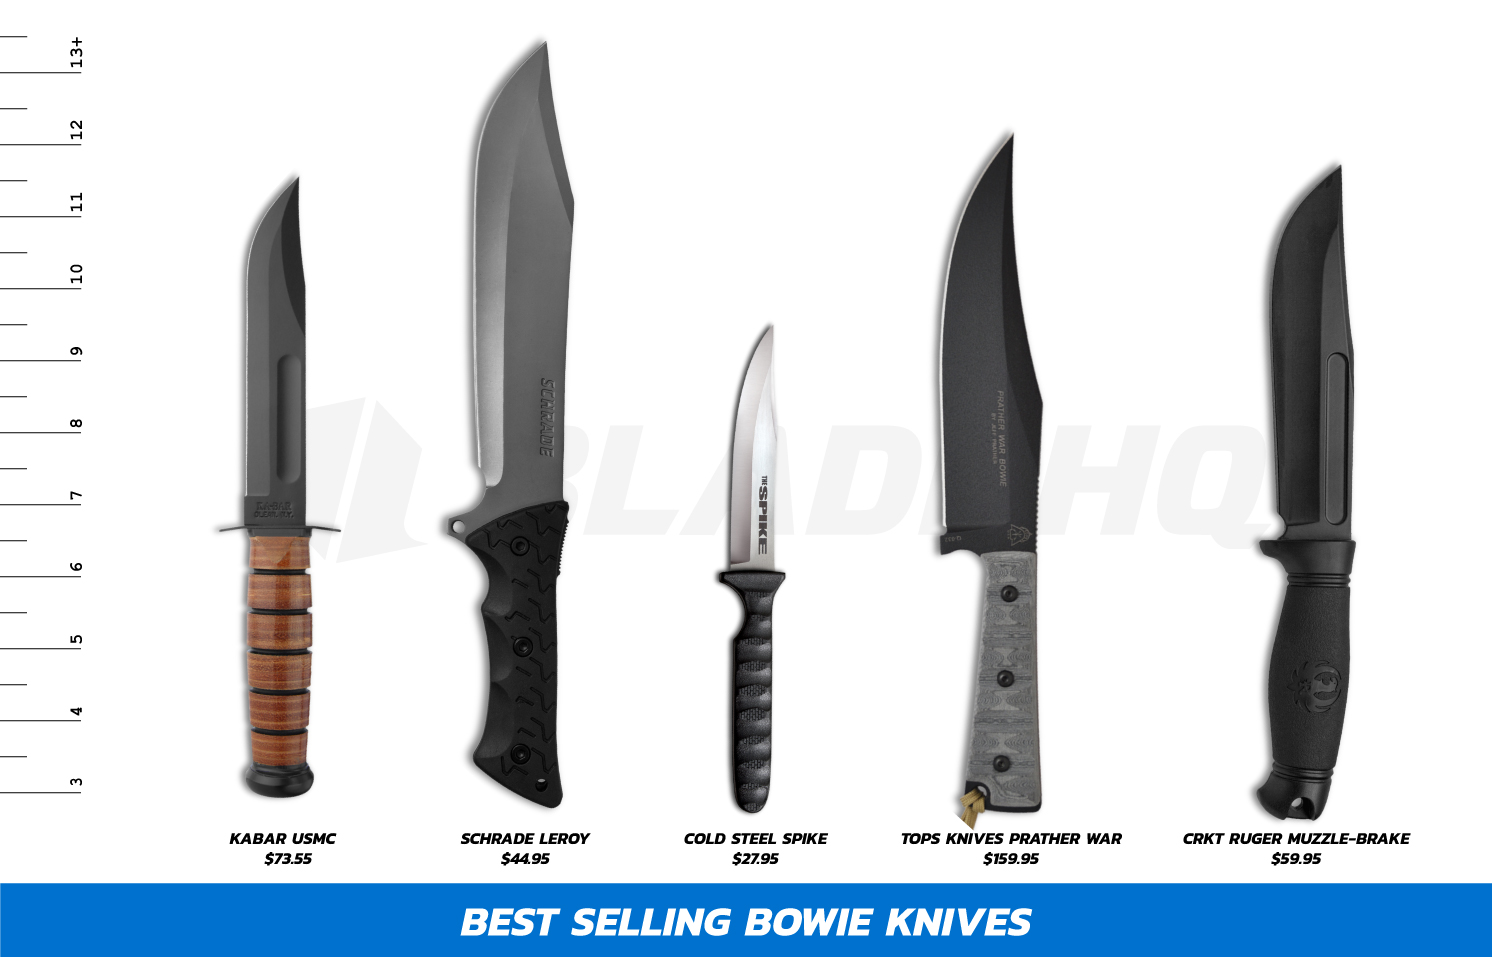 Most Popular Bowie Knives